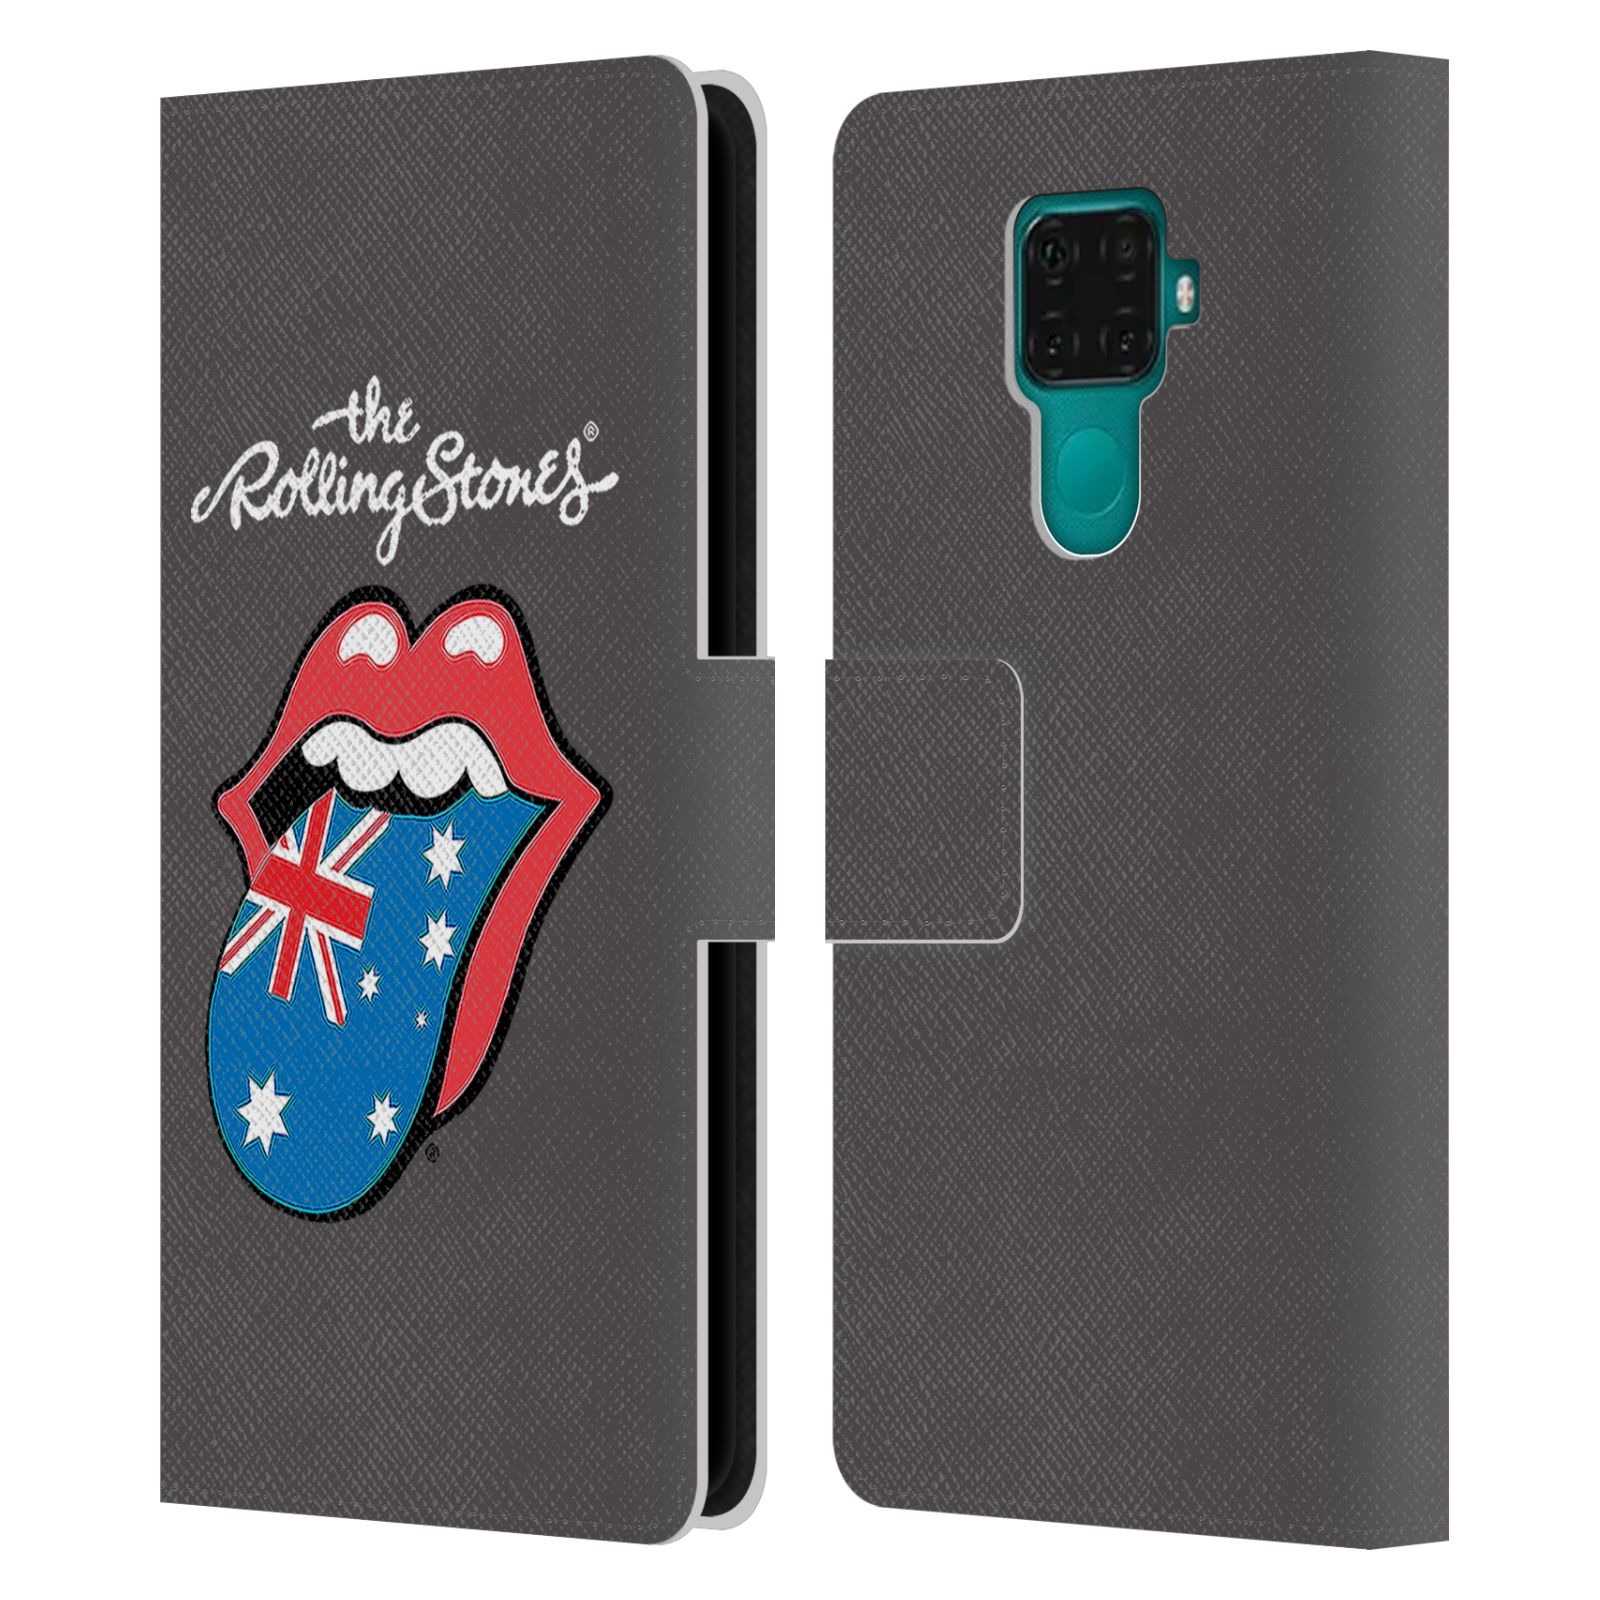 Official The Rolling Stones International Licks 1 Australia Leather Book Wallet Case For Huawei Nova 5i Pro/Mate 30 Lite